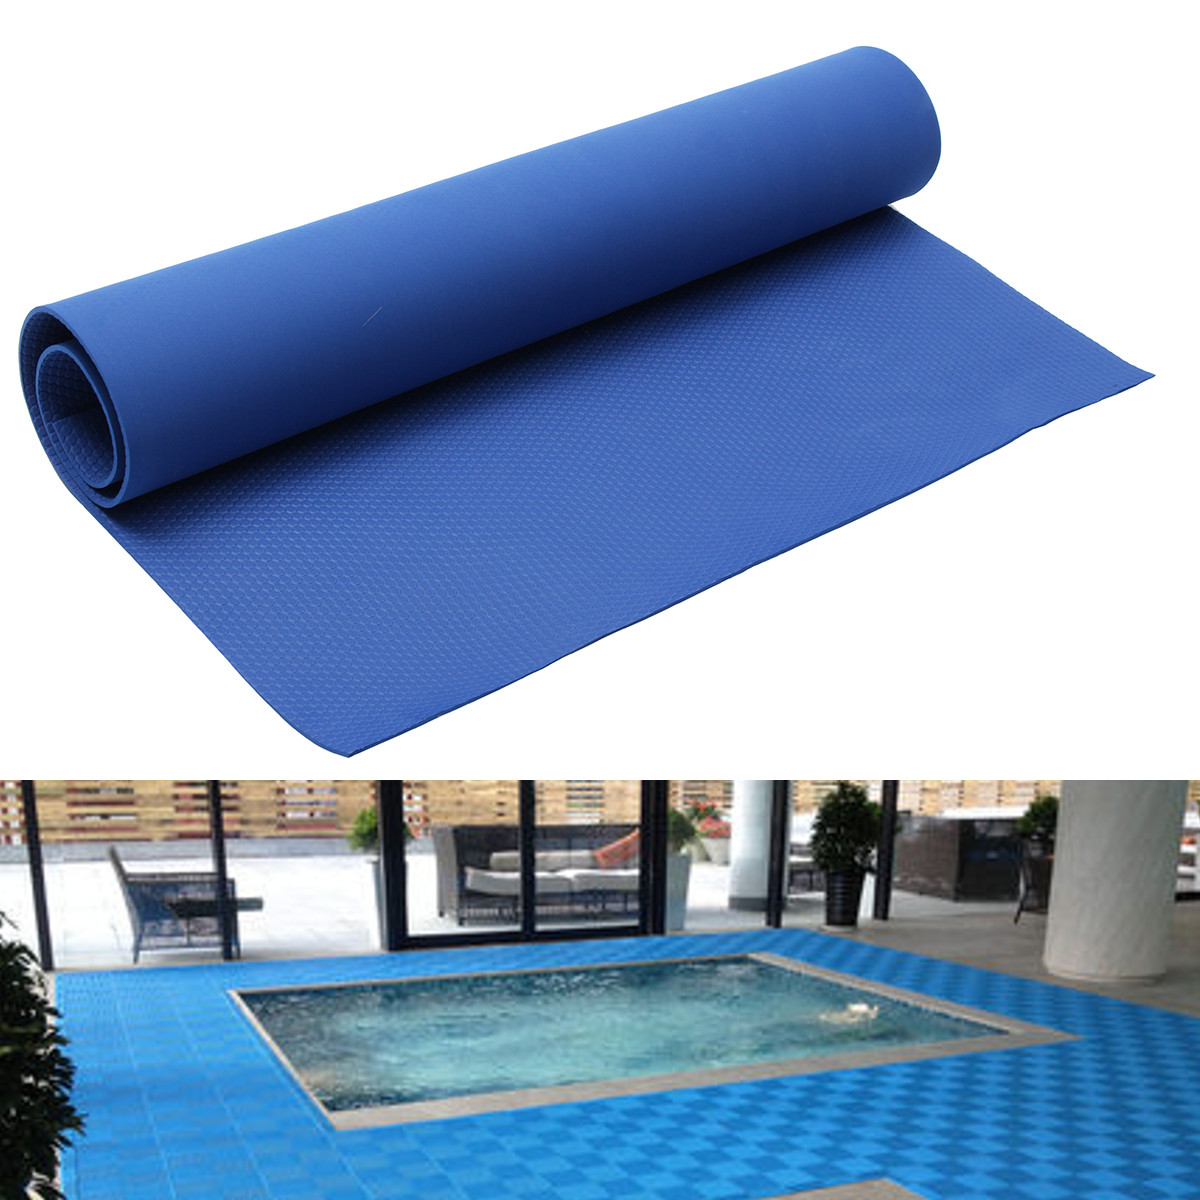 Blue Above Ground Swimming Pool Hydro Tools Ladder Step Anti-skid Pad Mat Liner Non-Slip Protection Pool Accessories 4 Sizes